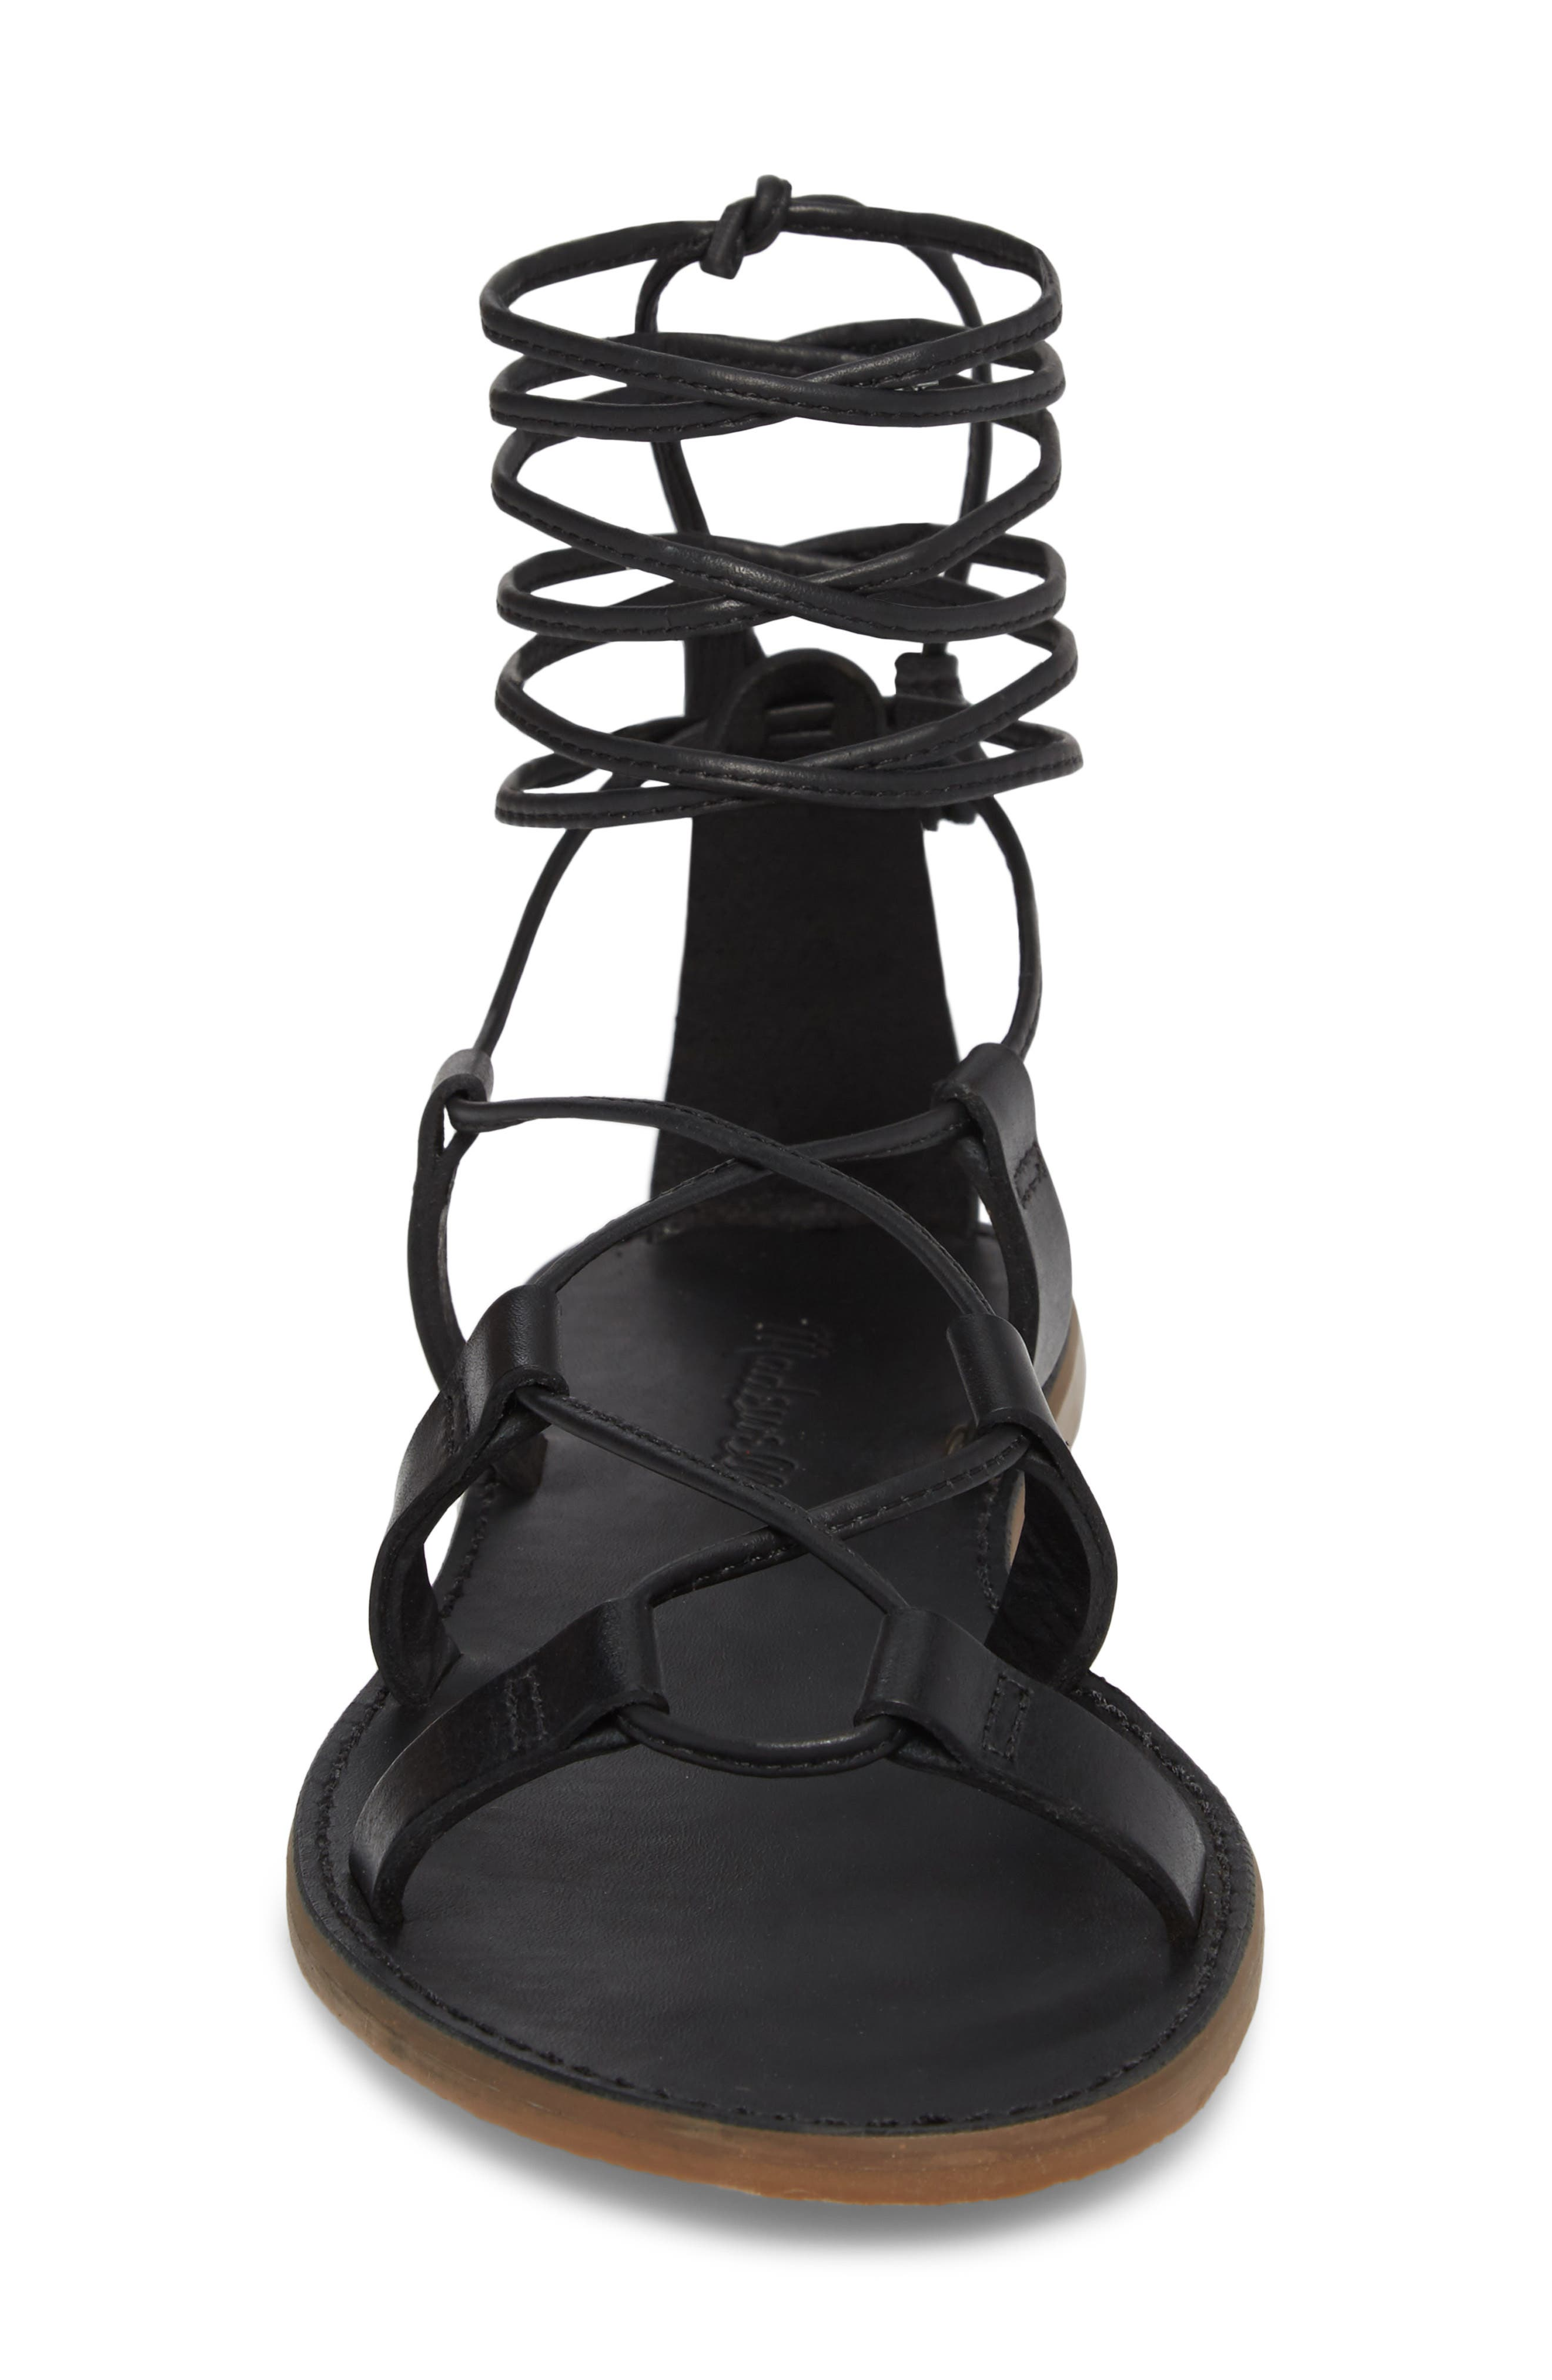 MADEWELL, The Boardwalk Lace-Up Sandal, Alternate thumbnail 4, color, 001